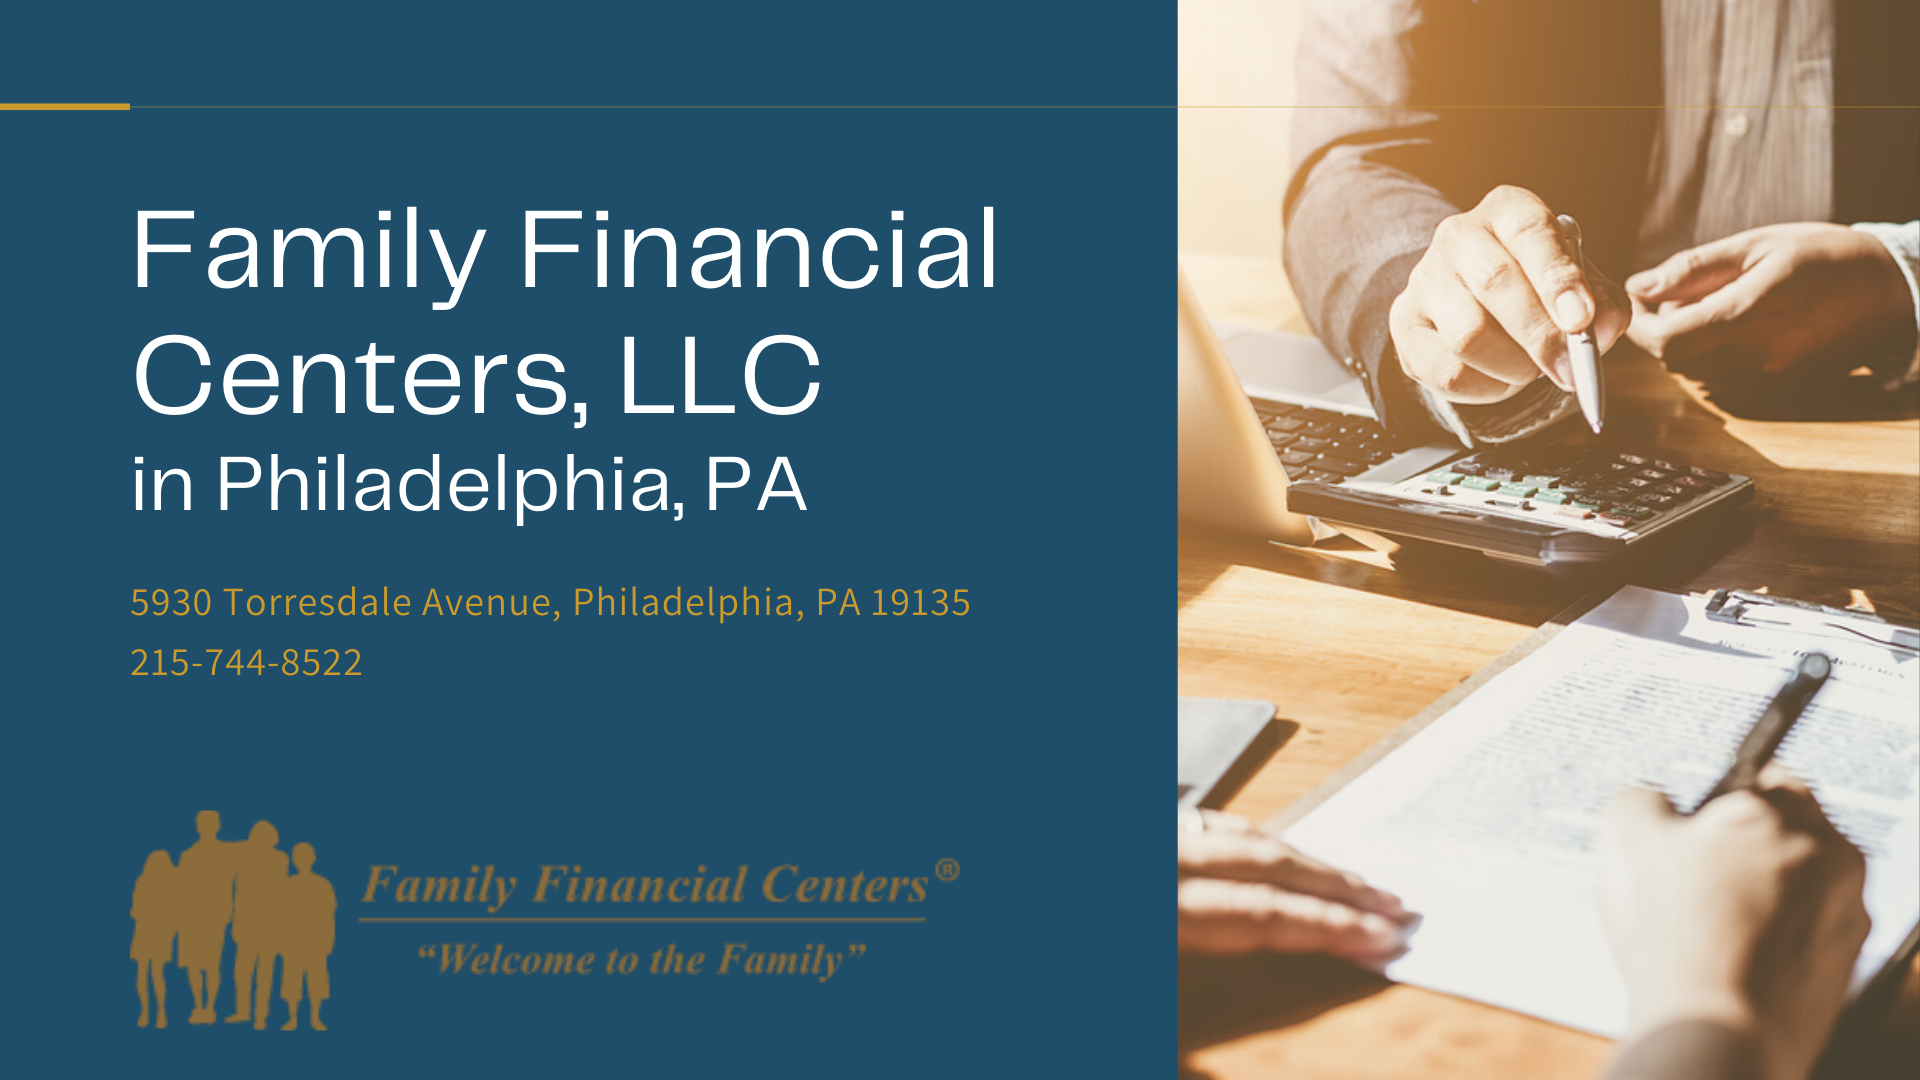 Family Financial Centers, LLC Announces New Location Open in Philadelphia – April 7, 2021